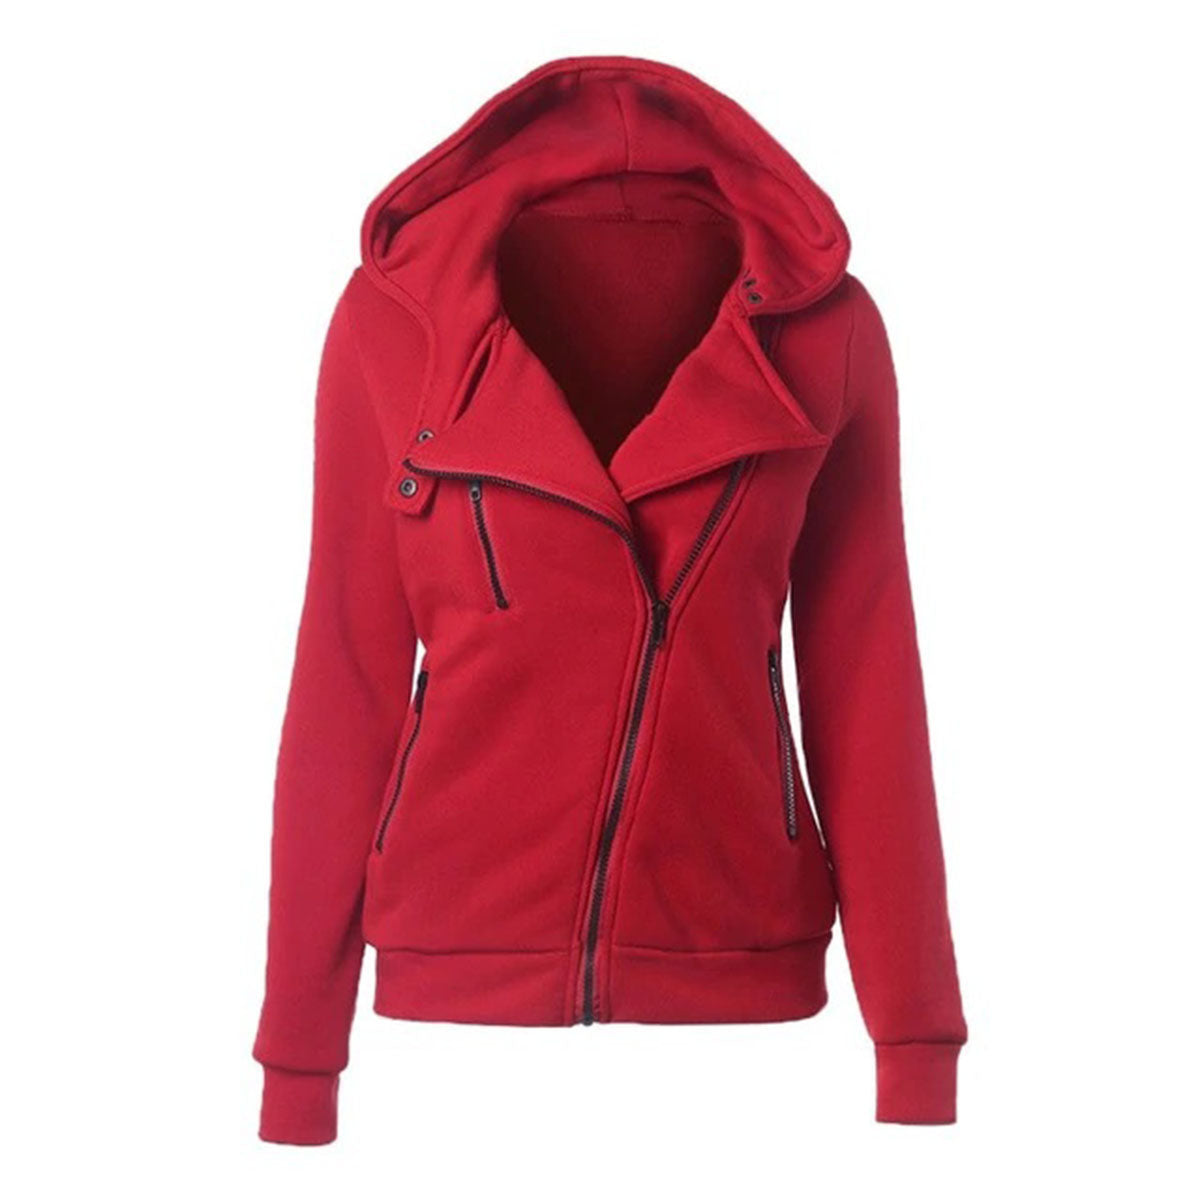 CALOFE 2019 Casual Winter Jacket for Women